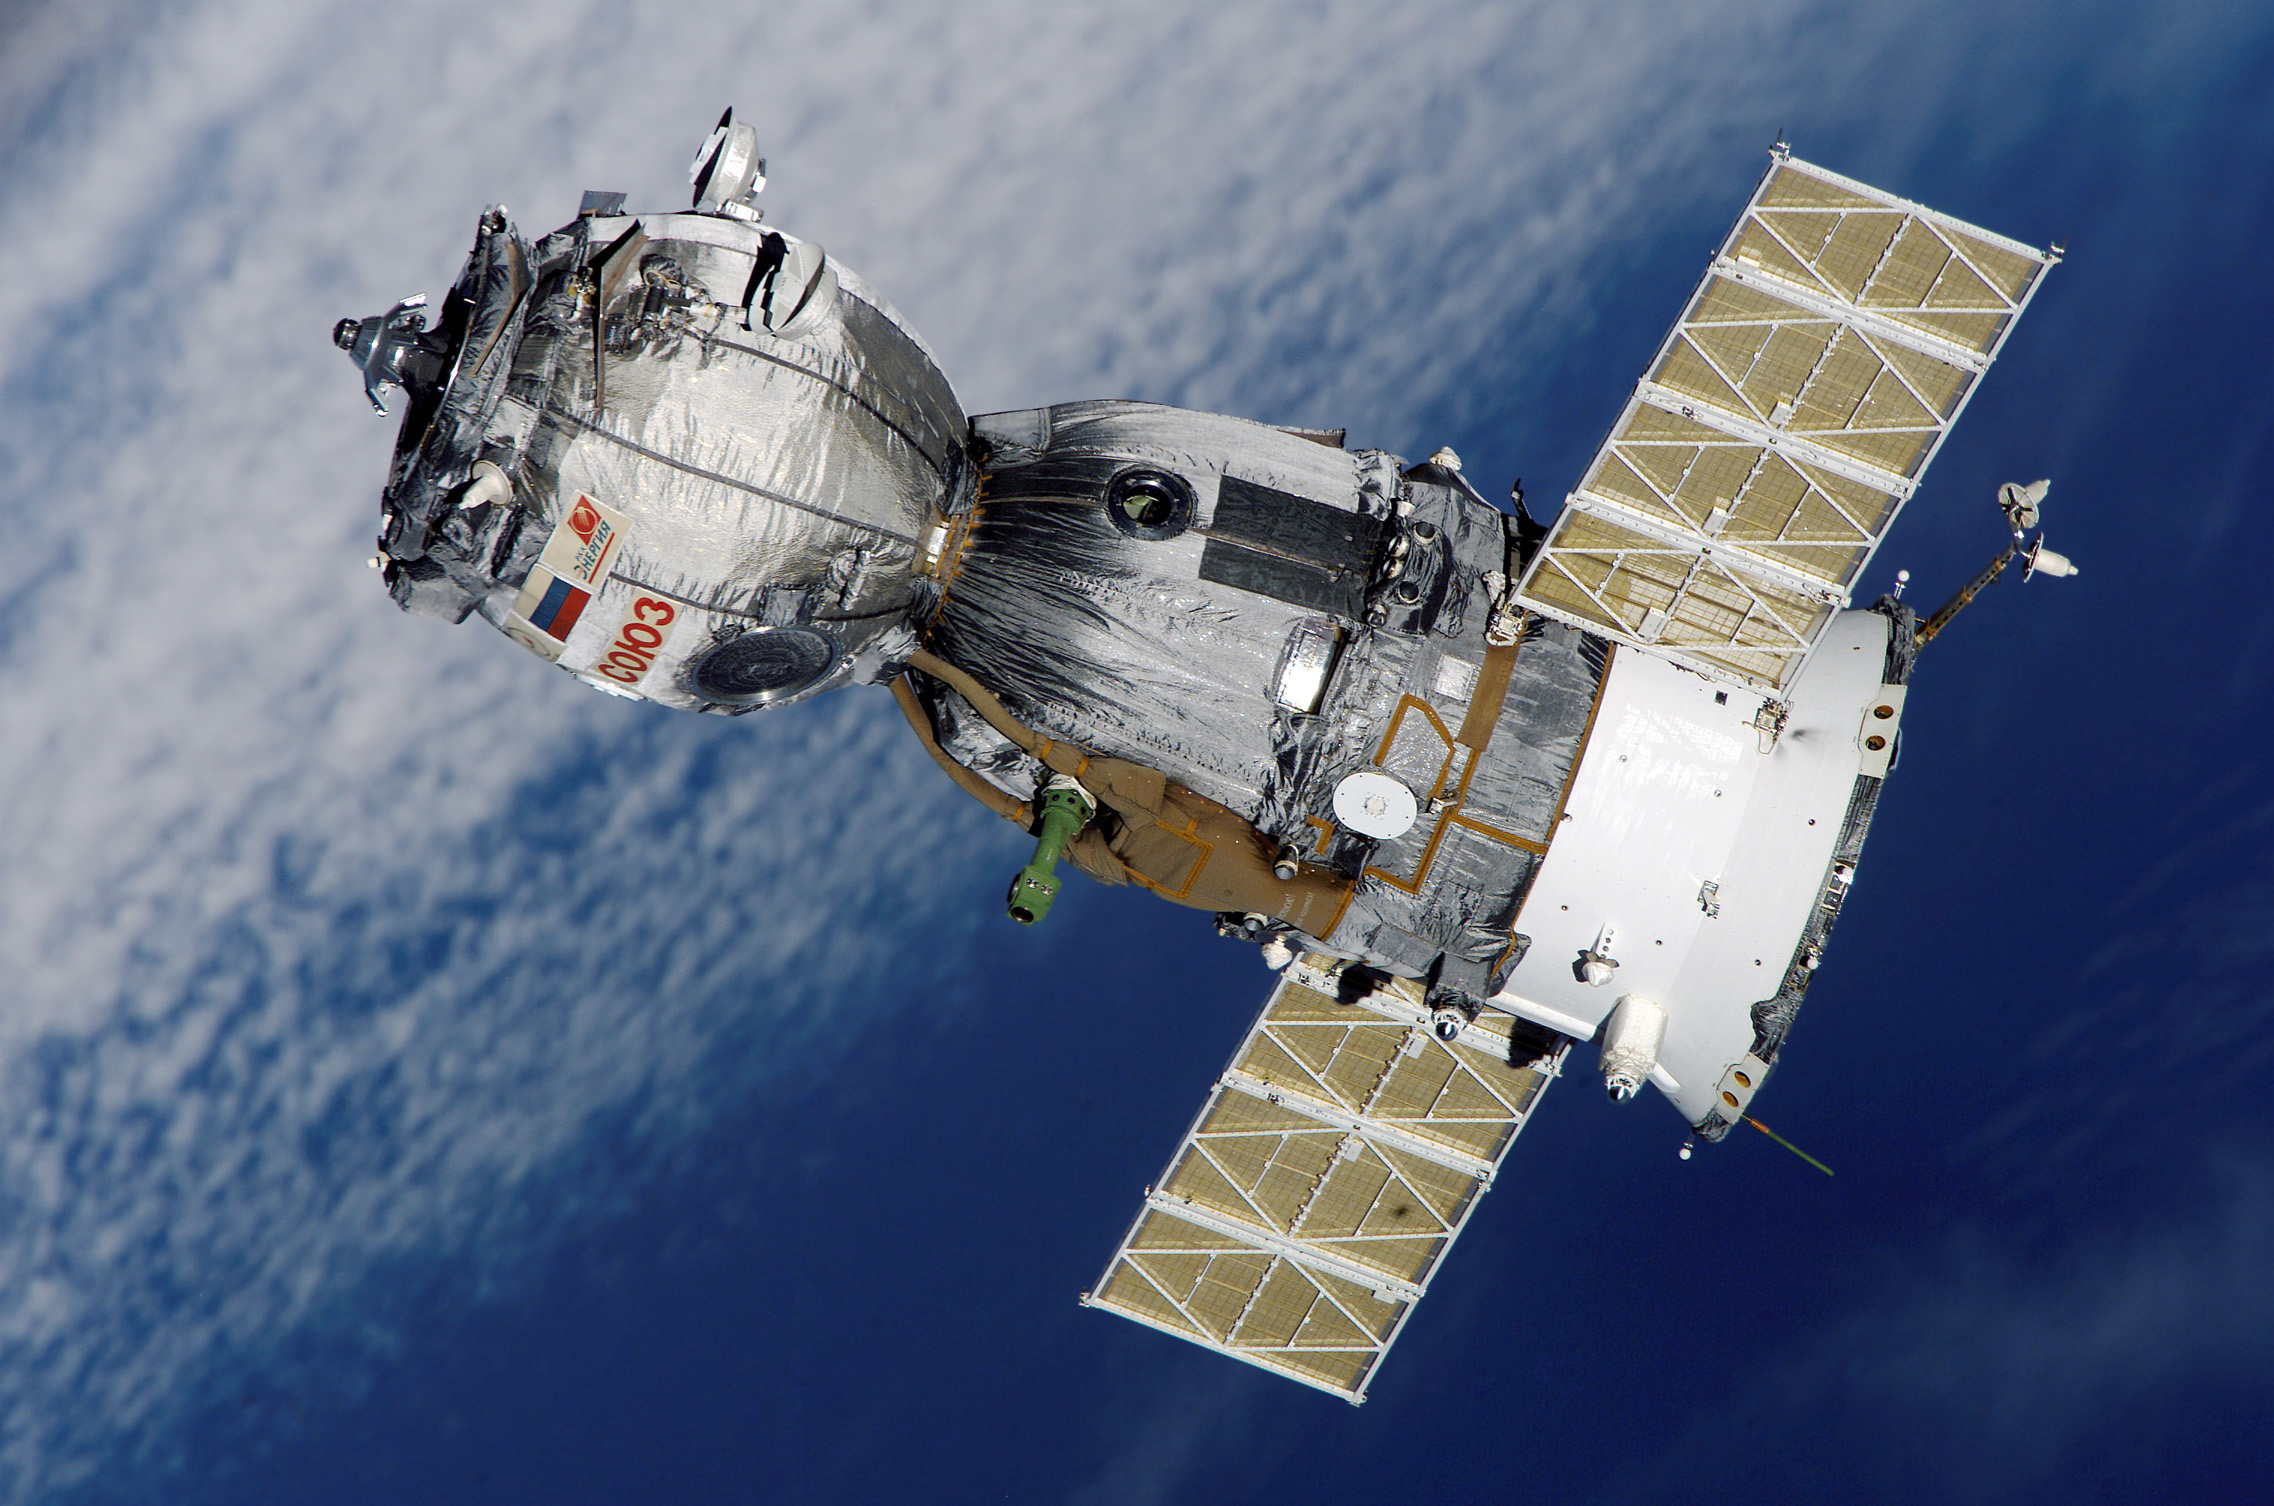 The Soyuz spacecraft which takes astronauts to the ISS